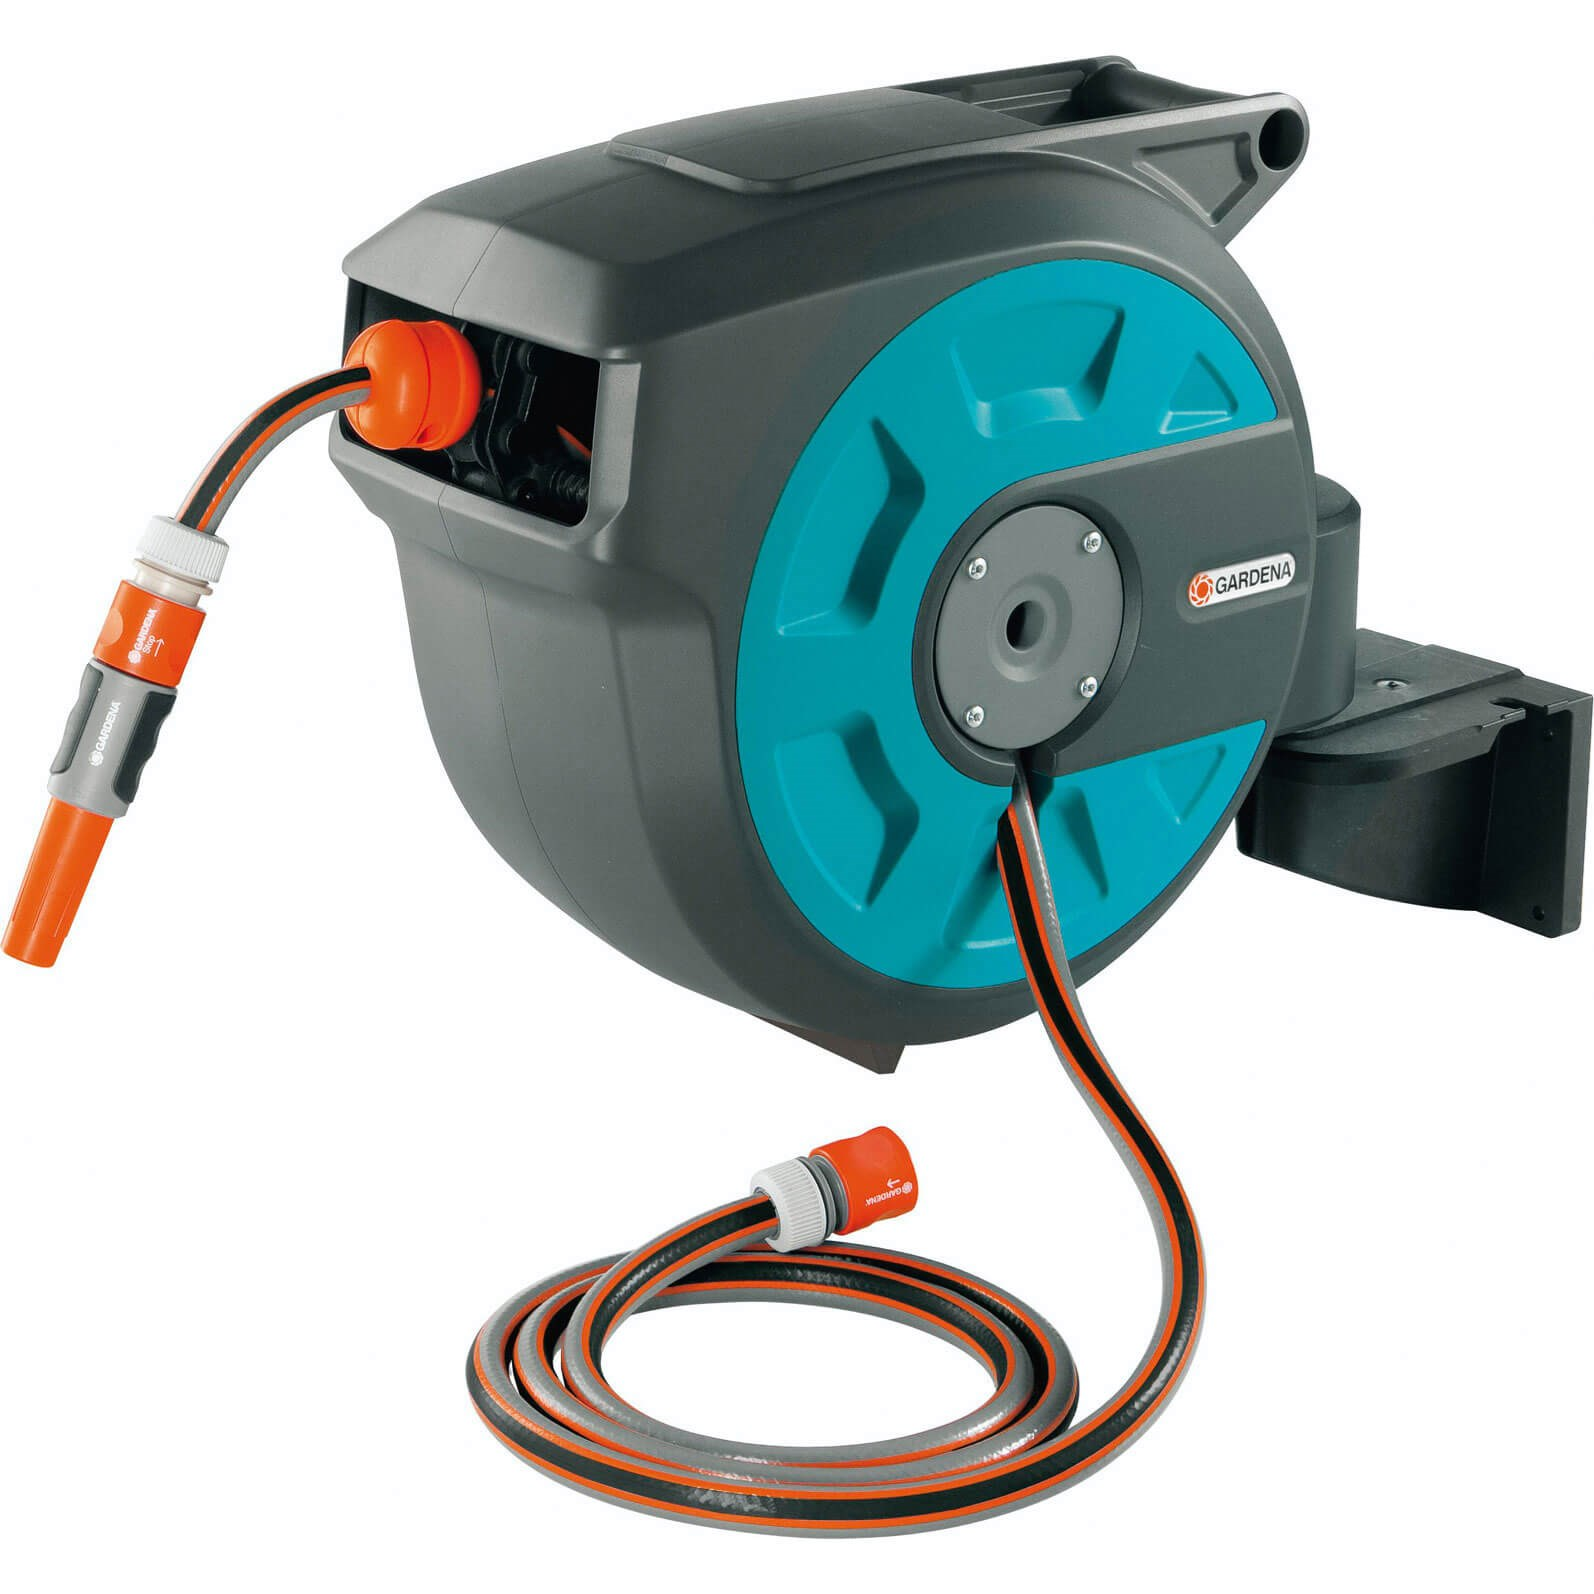 Gardena Wall Mounted Auto Hose Reel